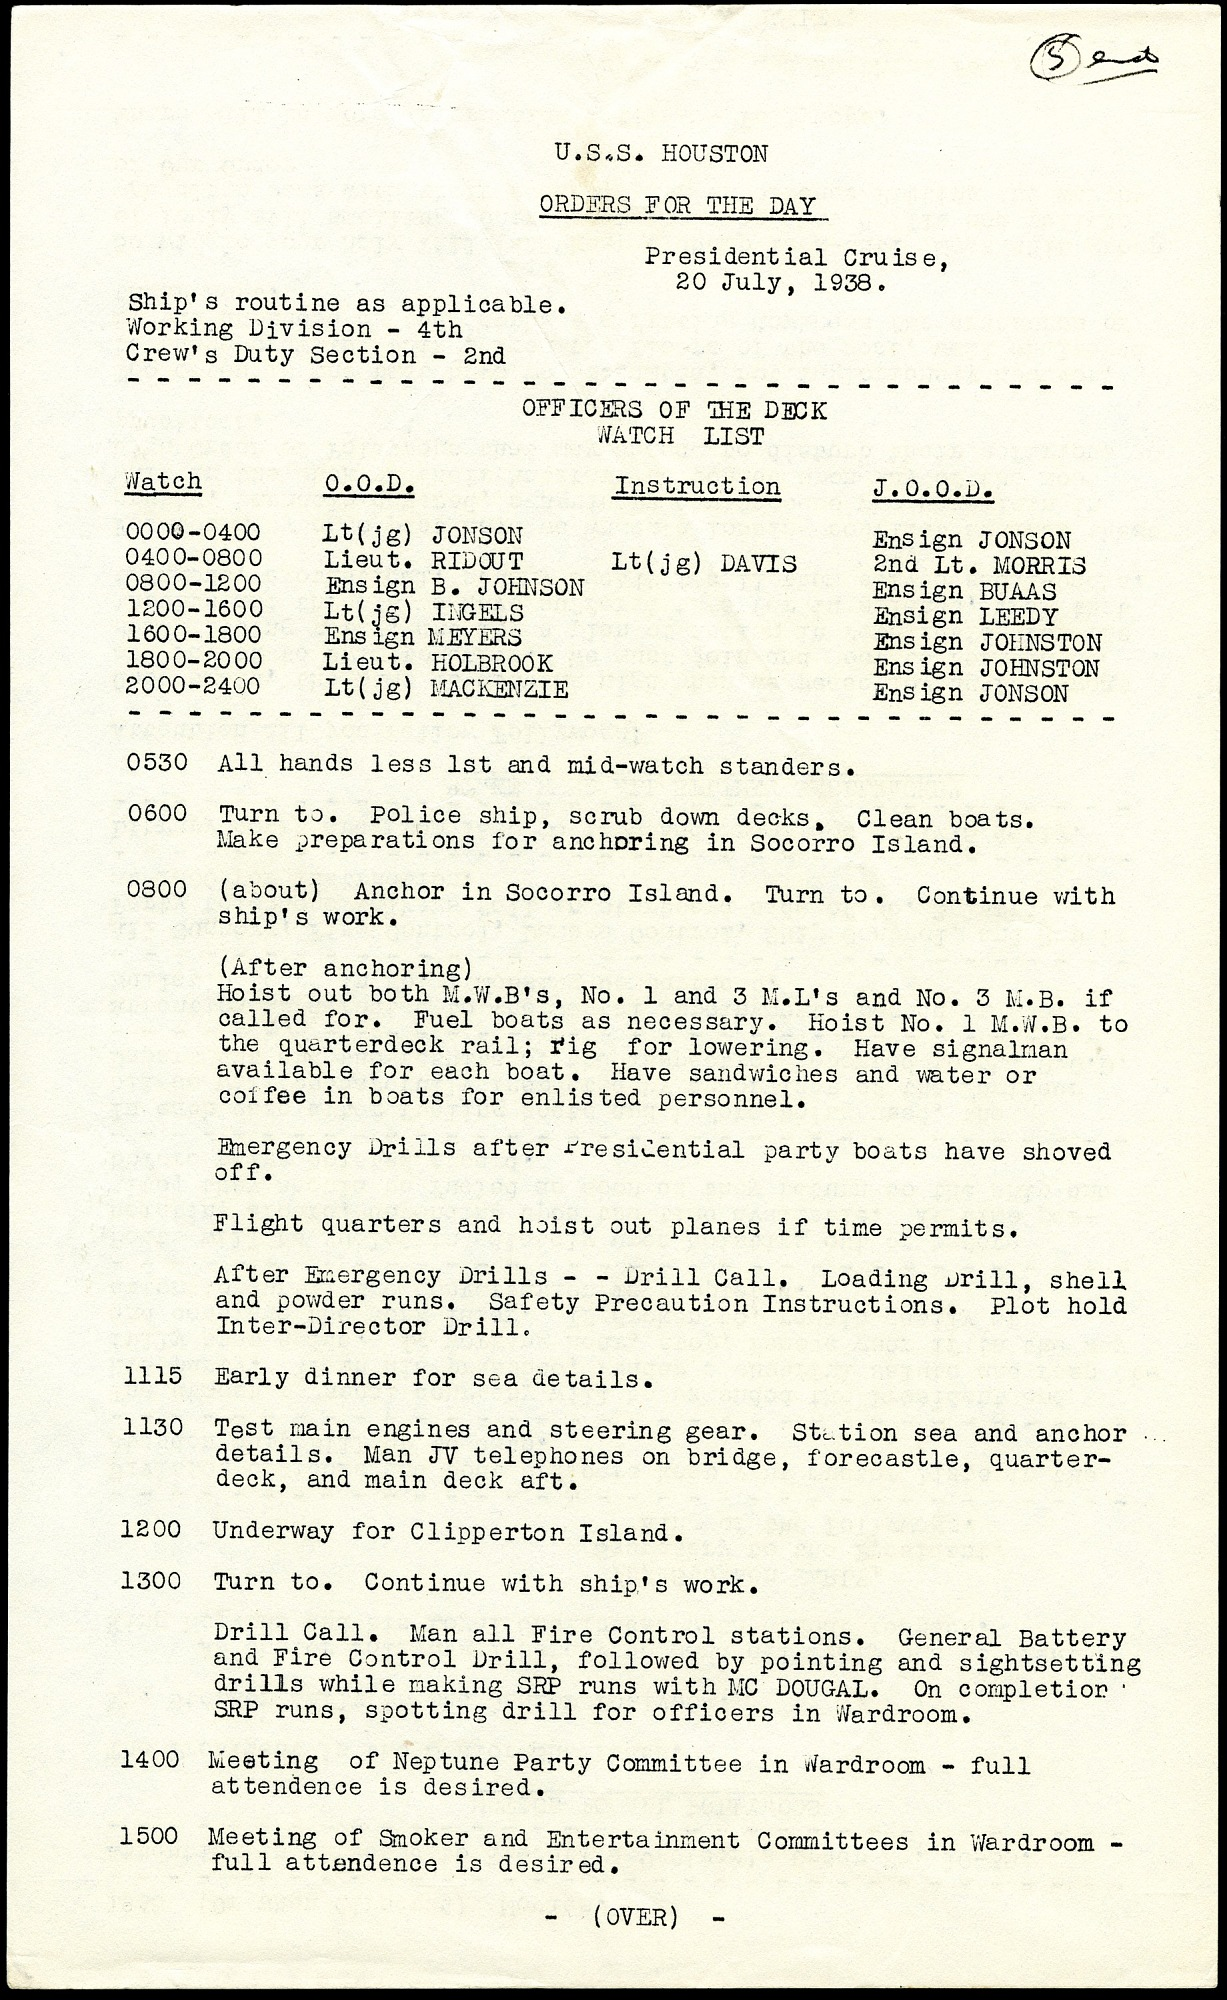 Orders for the Day for July 20, 1938, USS Houston, F.D. Roosevelt's Presidental Cruise, Front.